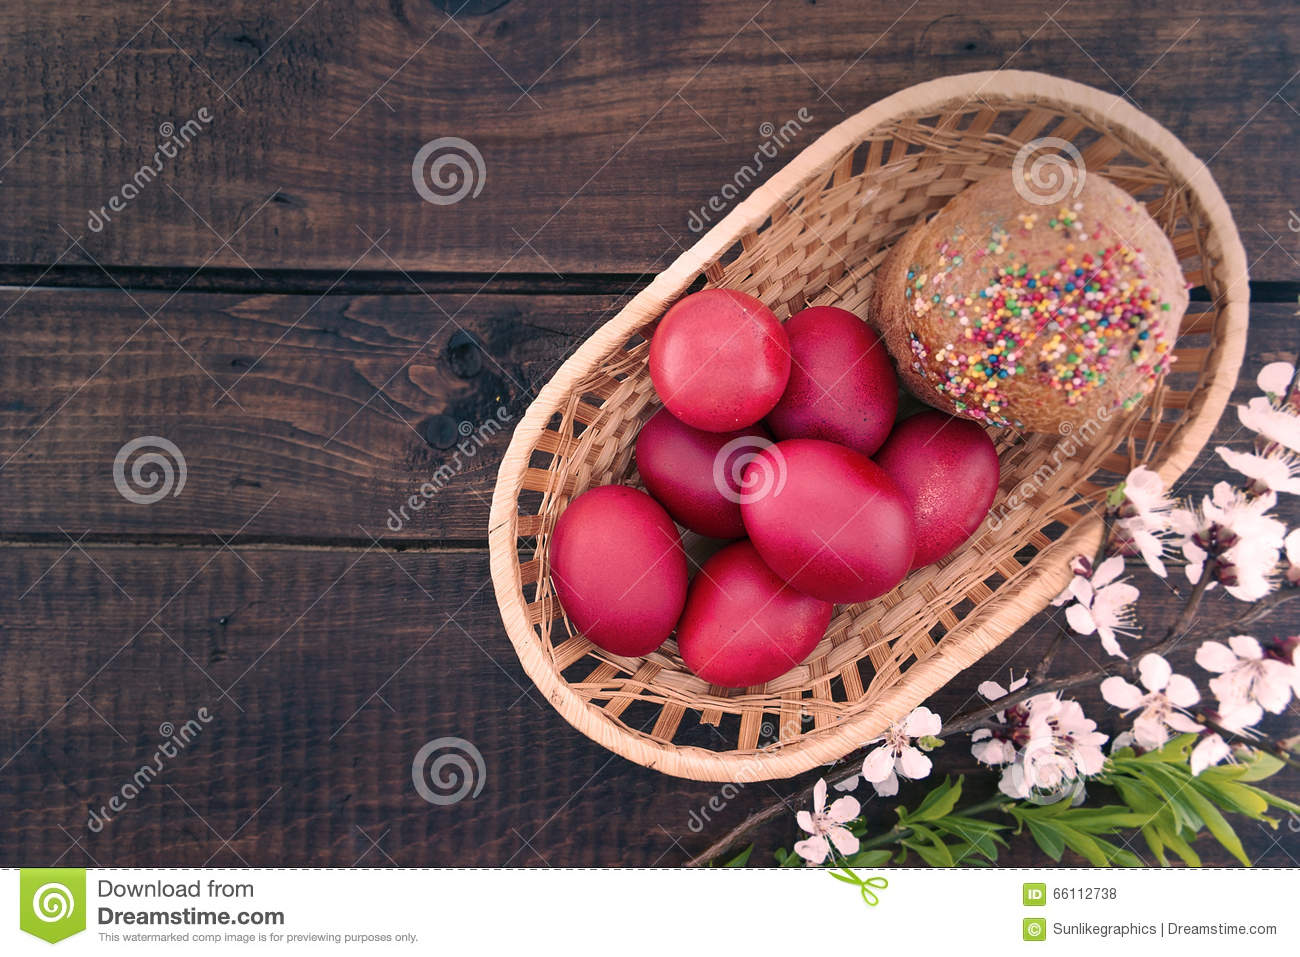 Basket with easter cake and red eggs on rustic wooden table. Top